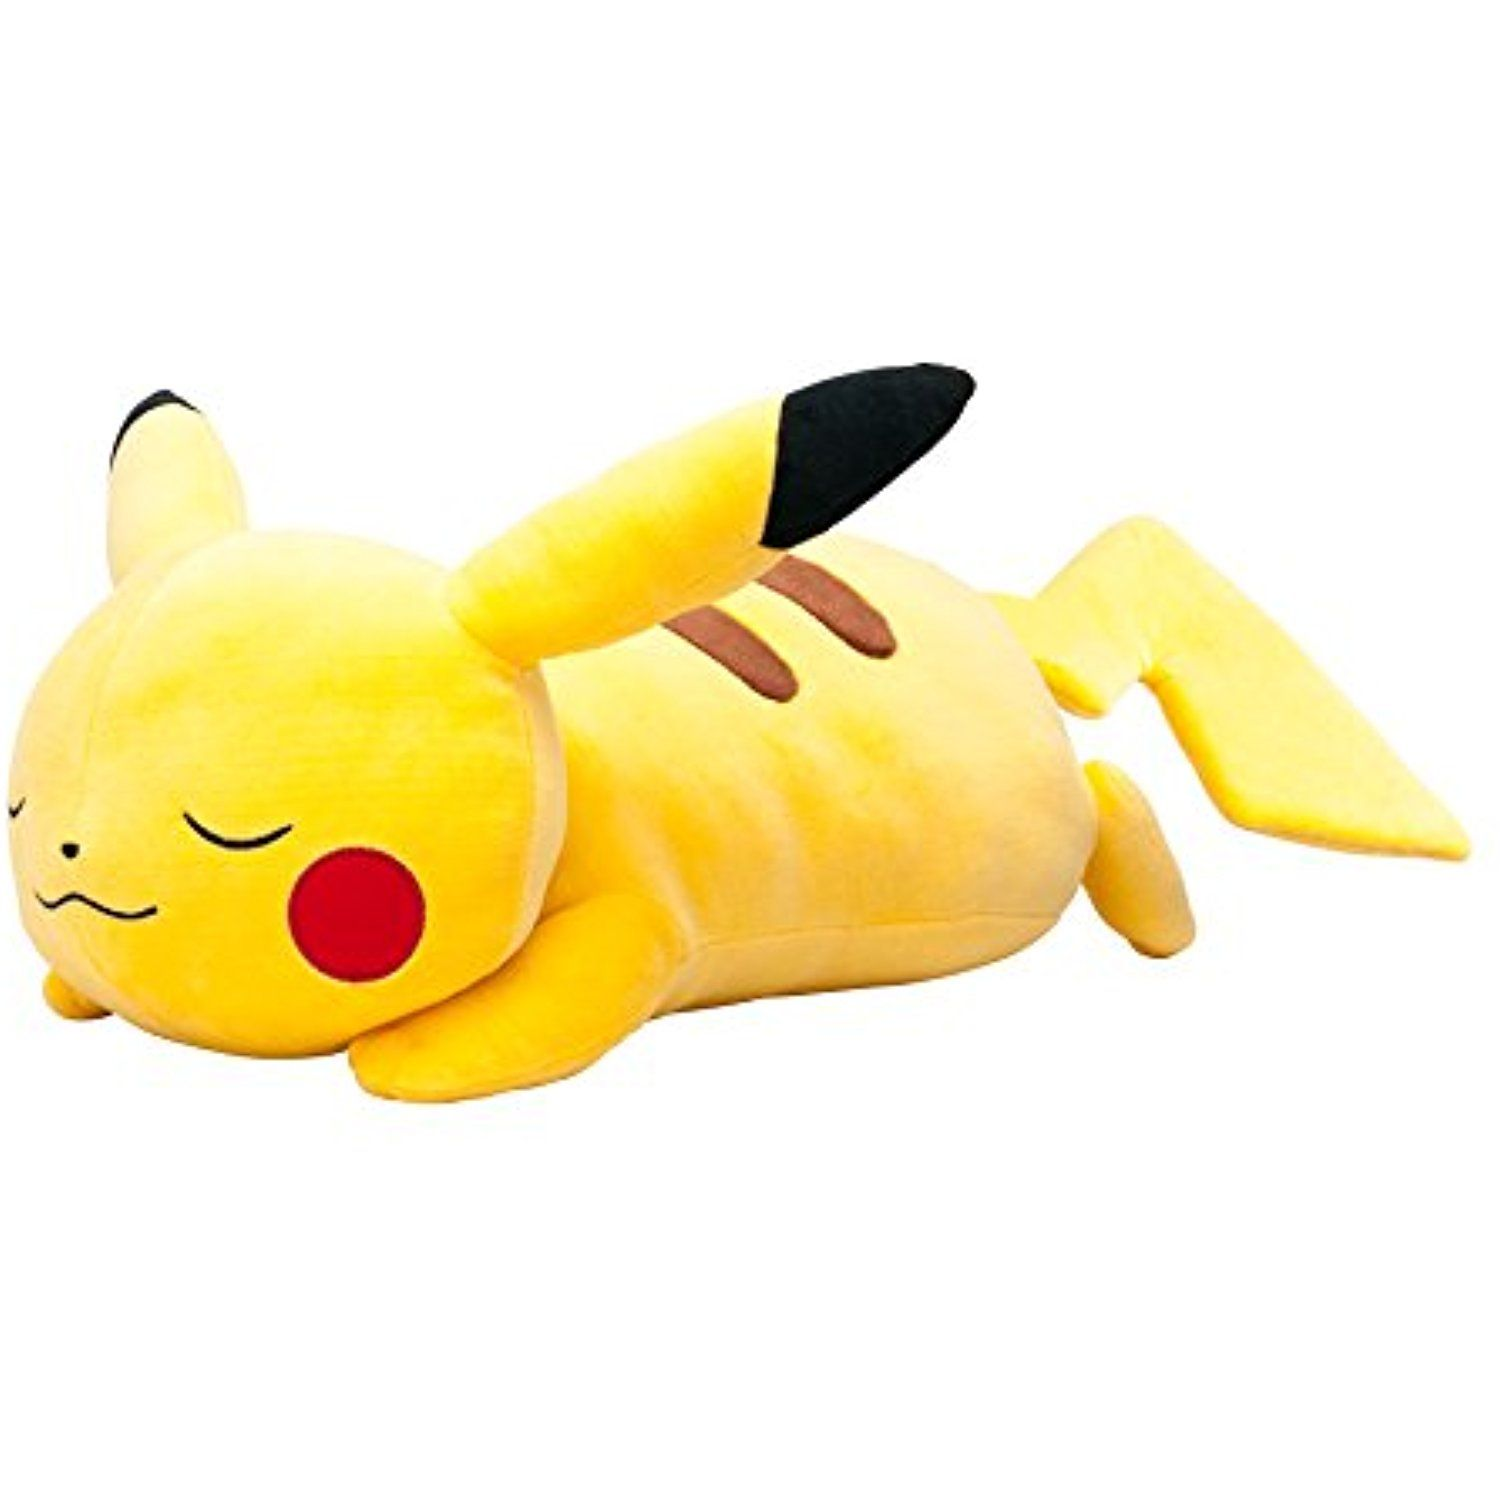 Pikachu Stuffed Animal Big, Pokemon Center Original Big Size Sleeping Pikachu Plush Doll Click Image For More Details This Is An Affilia Pikachu Plush Pikachu Fluffy Stuffed Animals